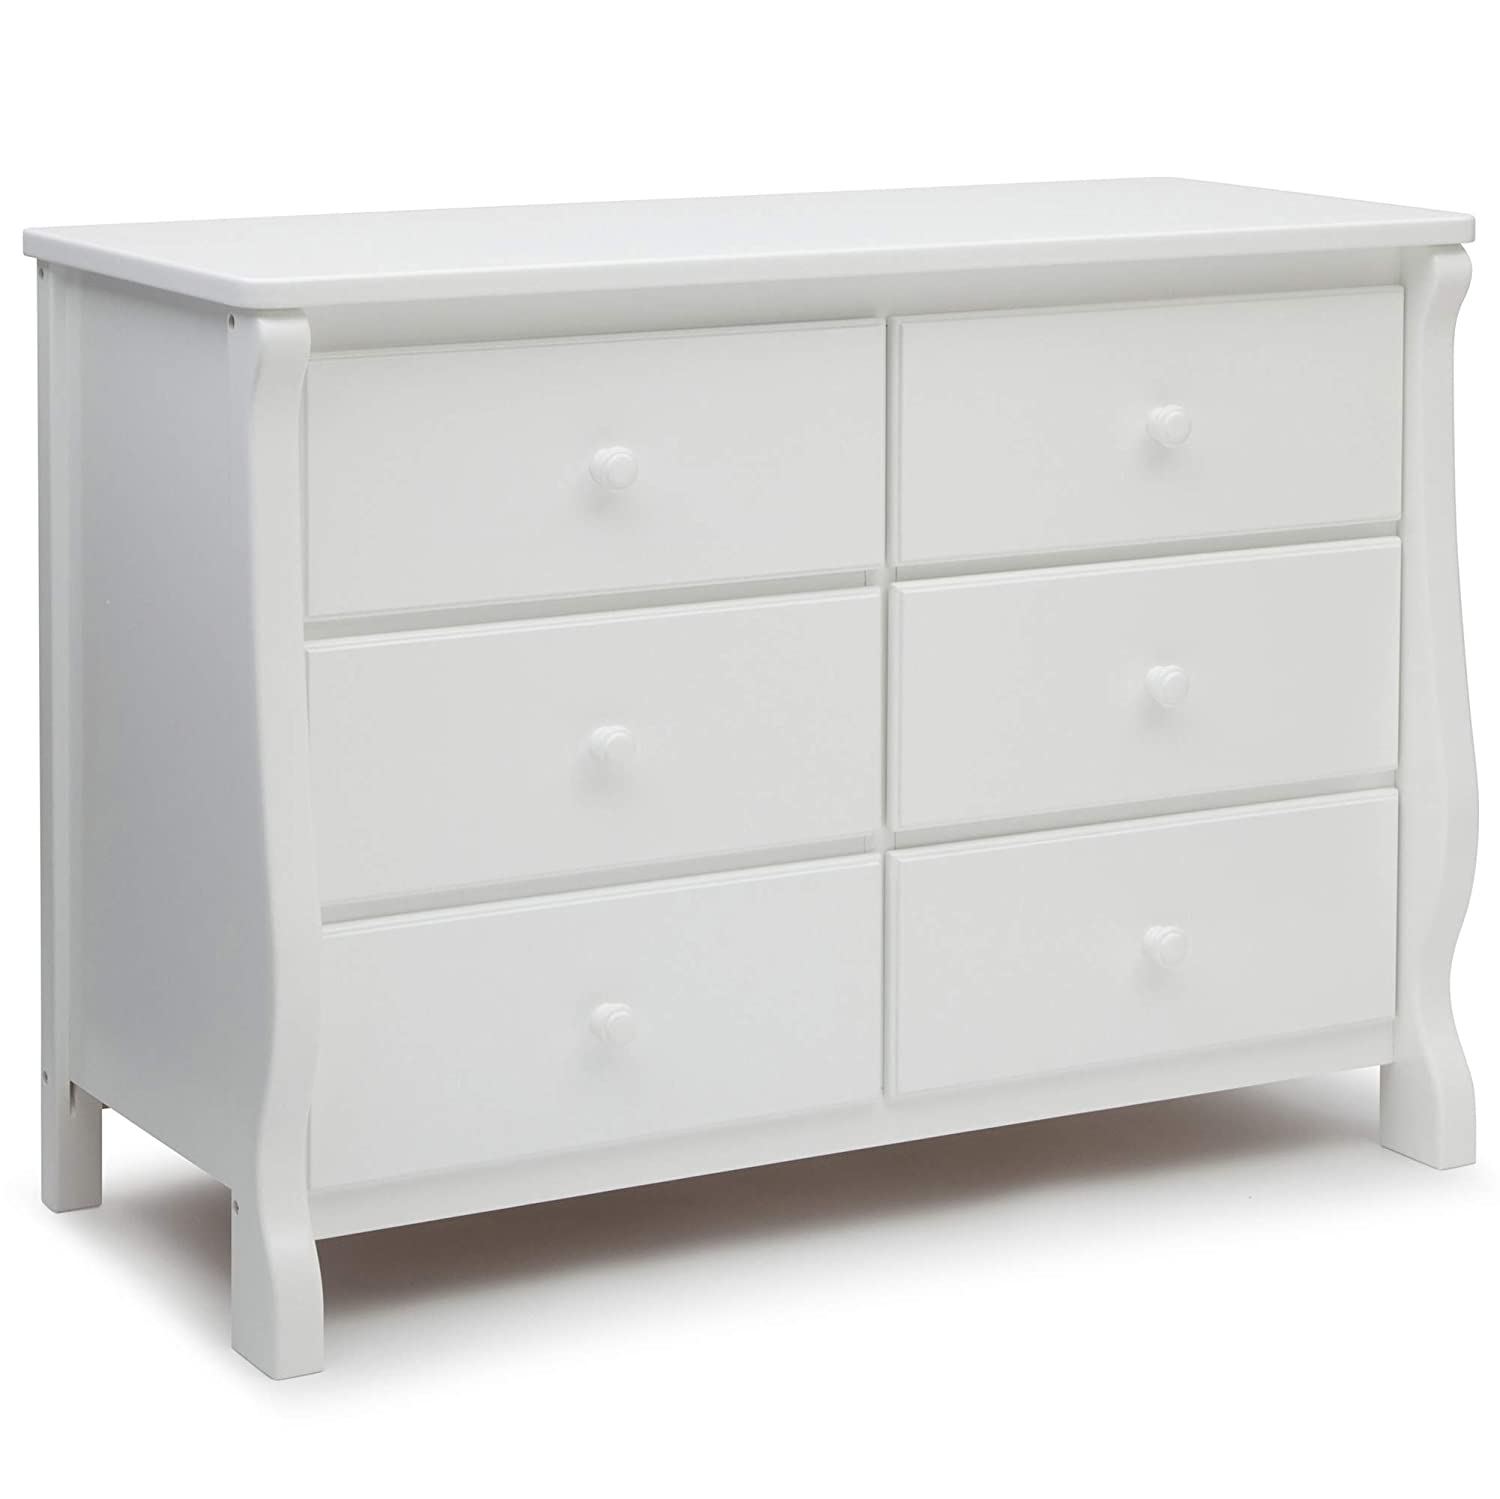 Delta Children Universal 6 Drawer Dresser, White